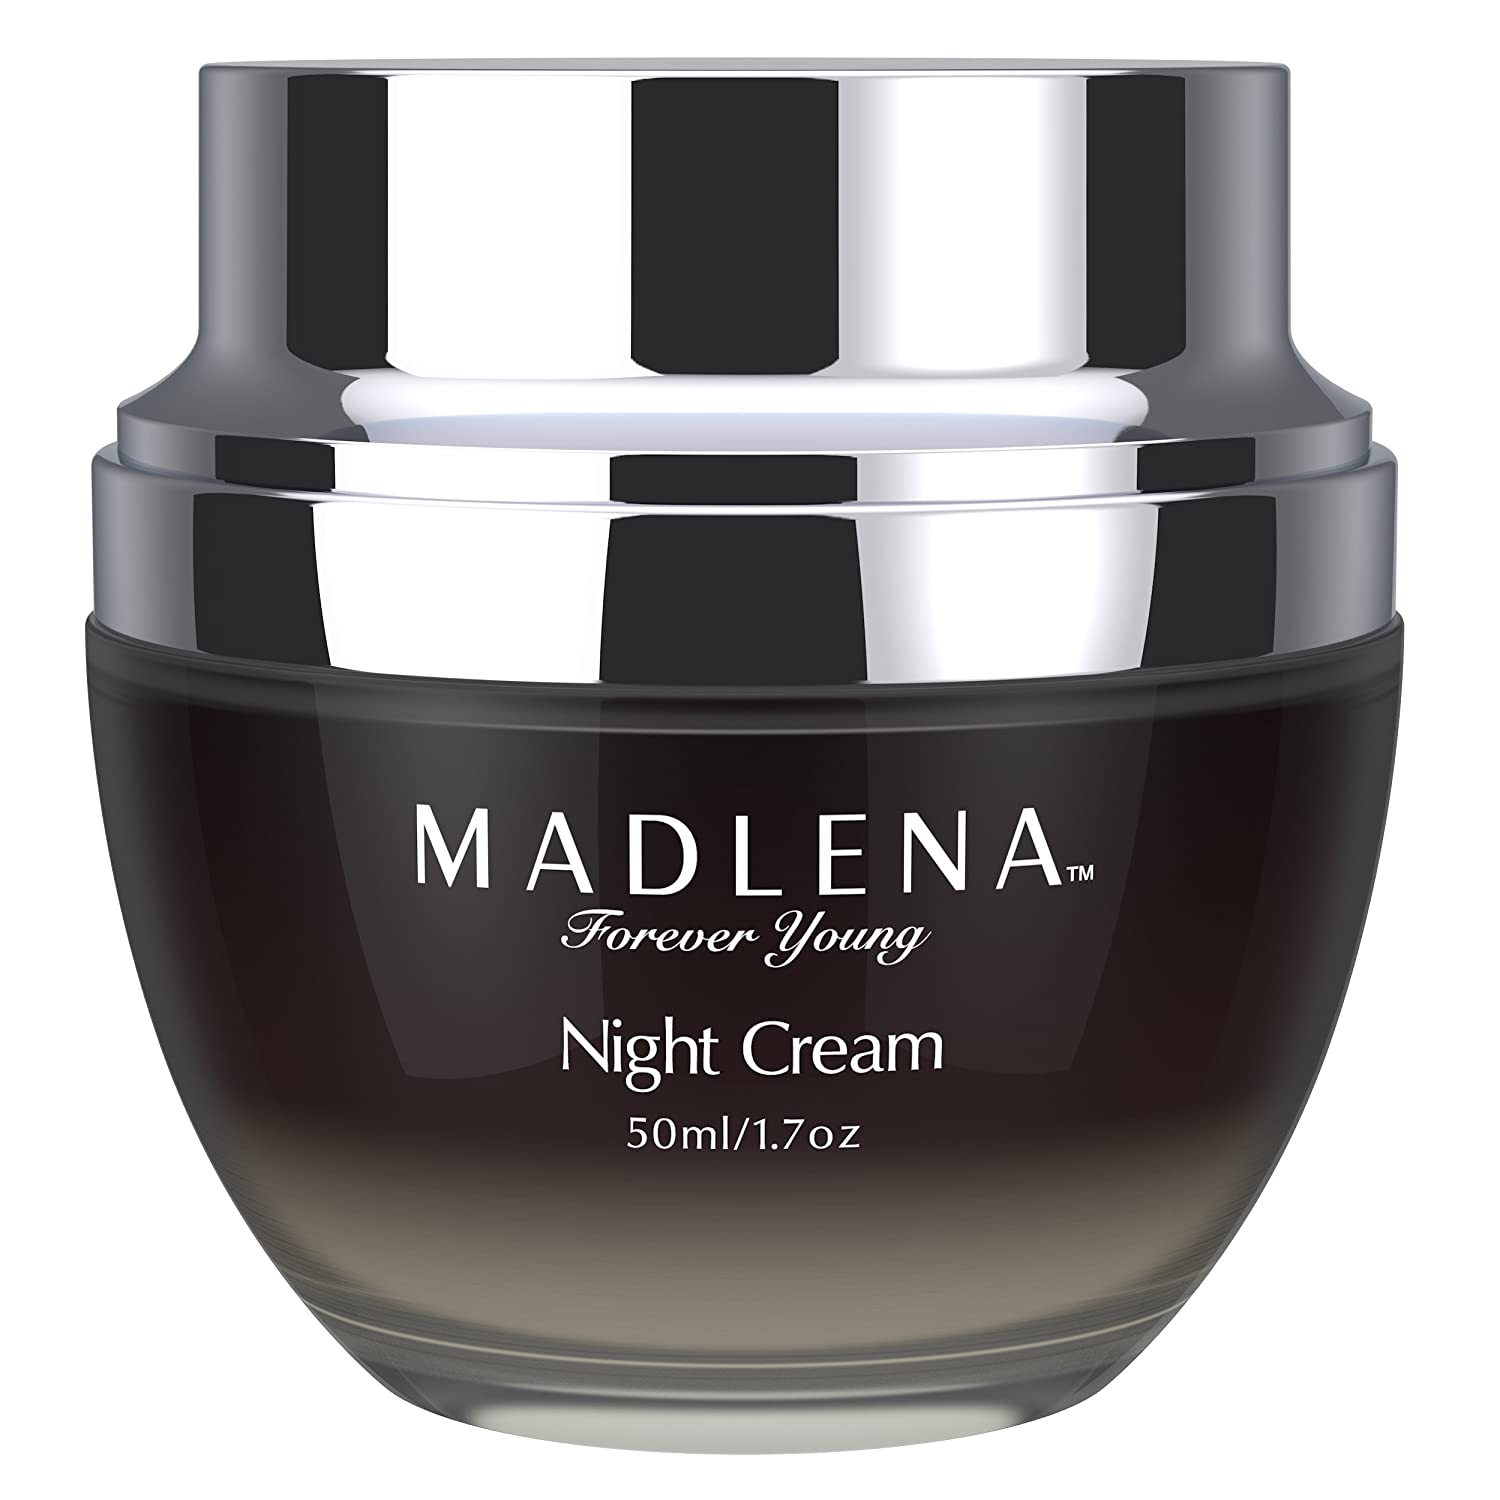 Madlena Advanced Anti-Aging Face & Neck Night Cream for Women - Powerful Anti-Wrinkle Beauty Care - Fade Lines, Repair Blemishes, Restore Skin Tone & Boosts Cell Regeneration While You Sleep Madlena Cosmetics